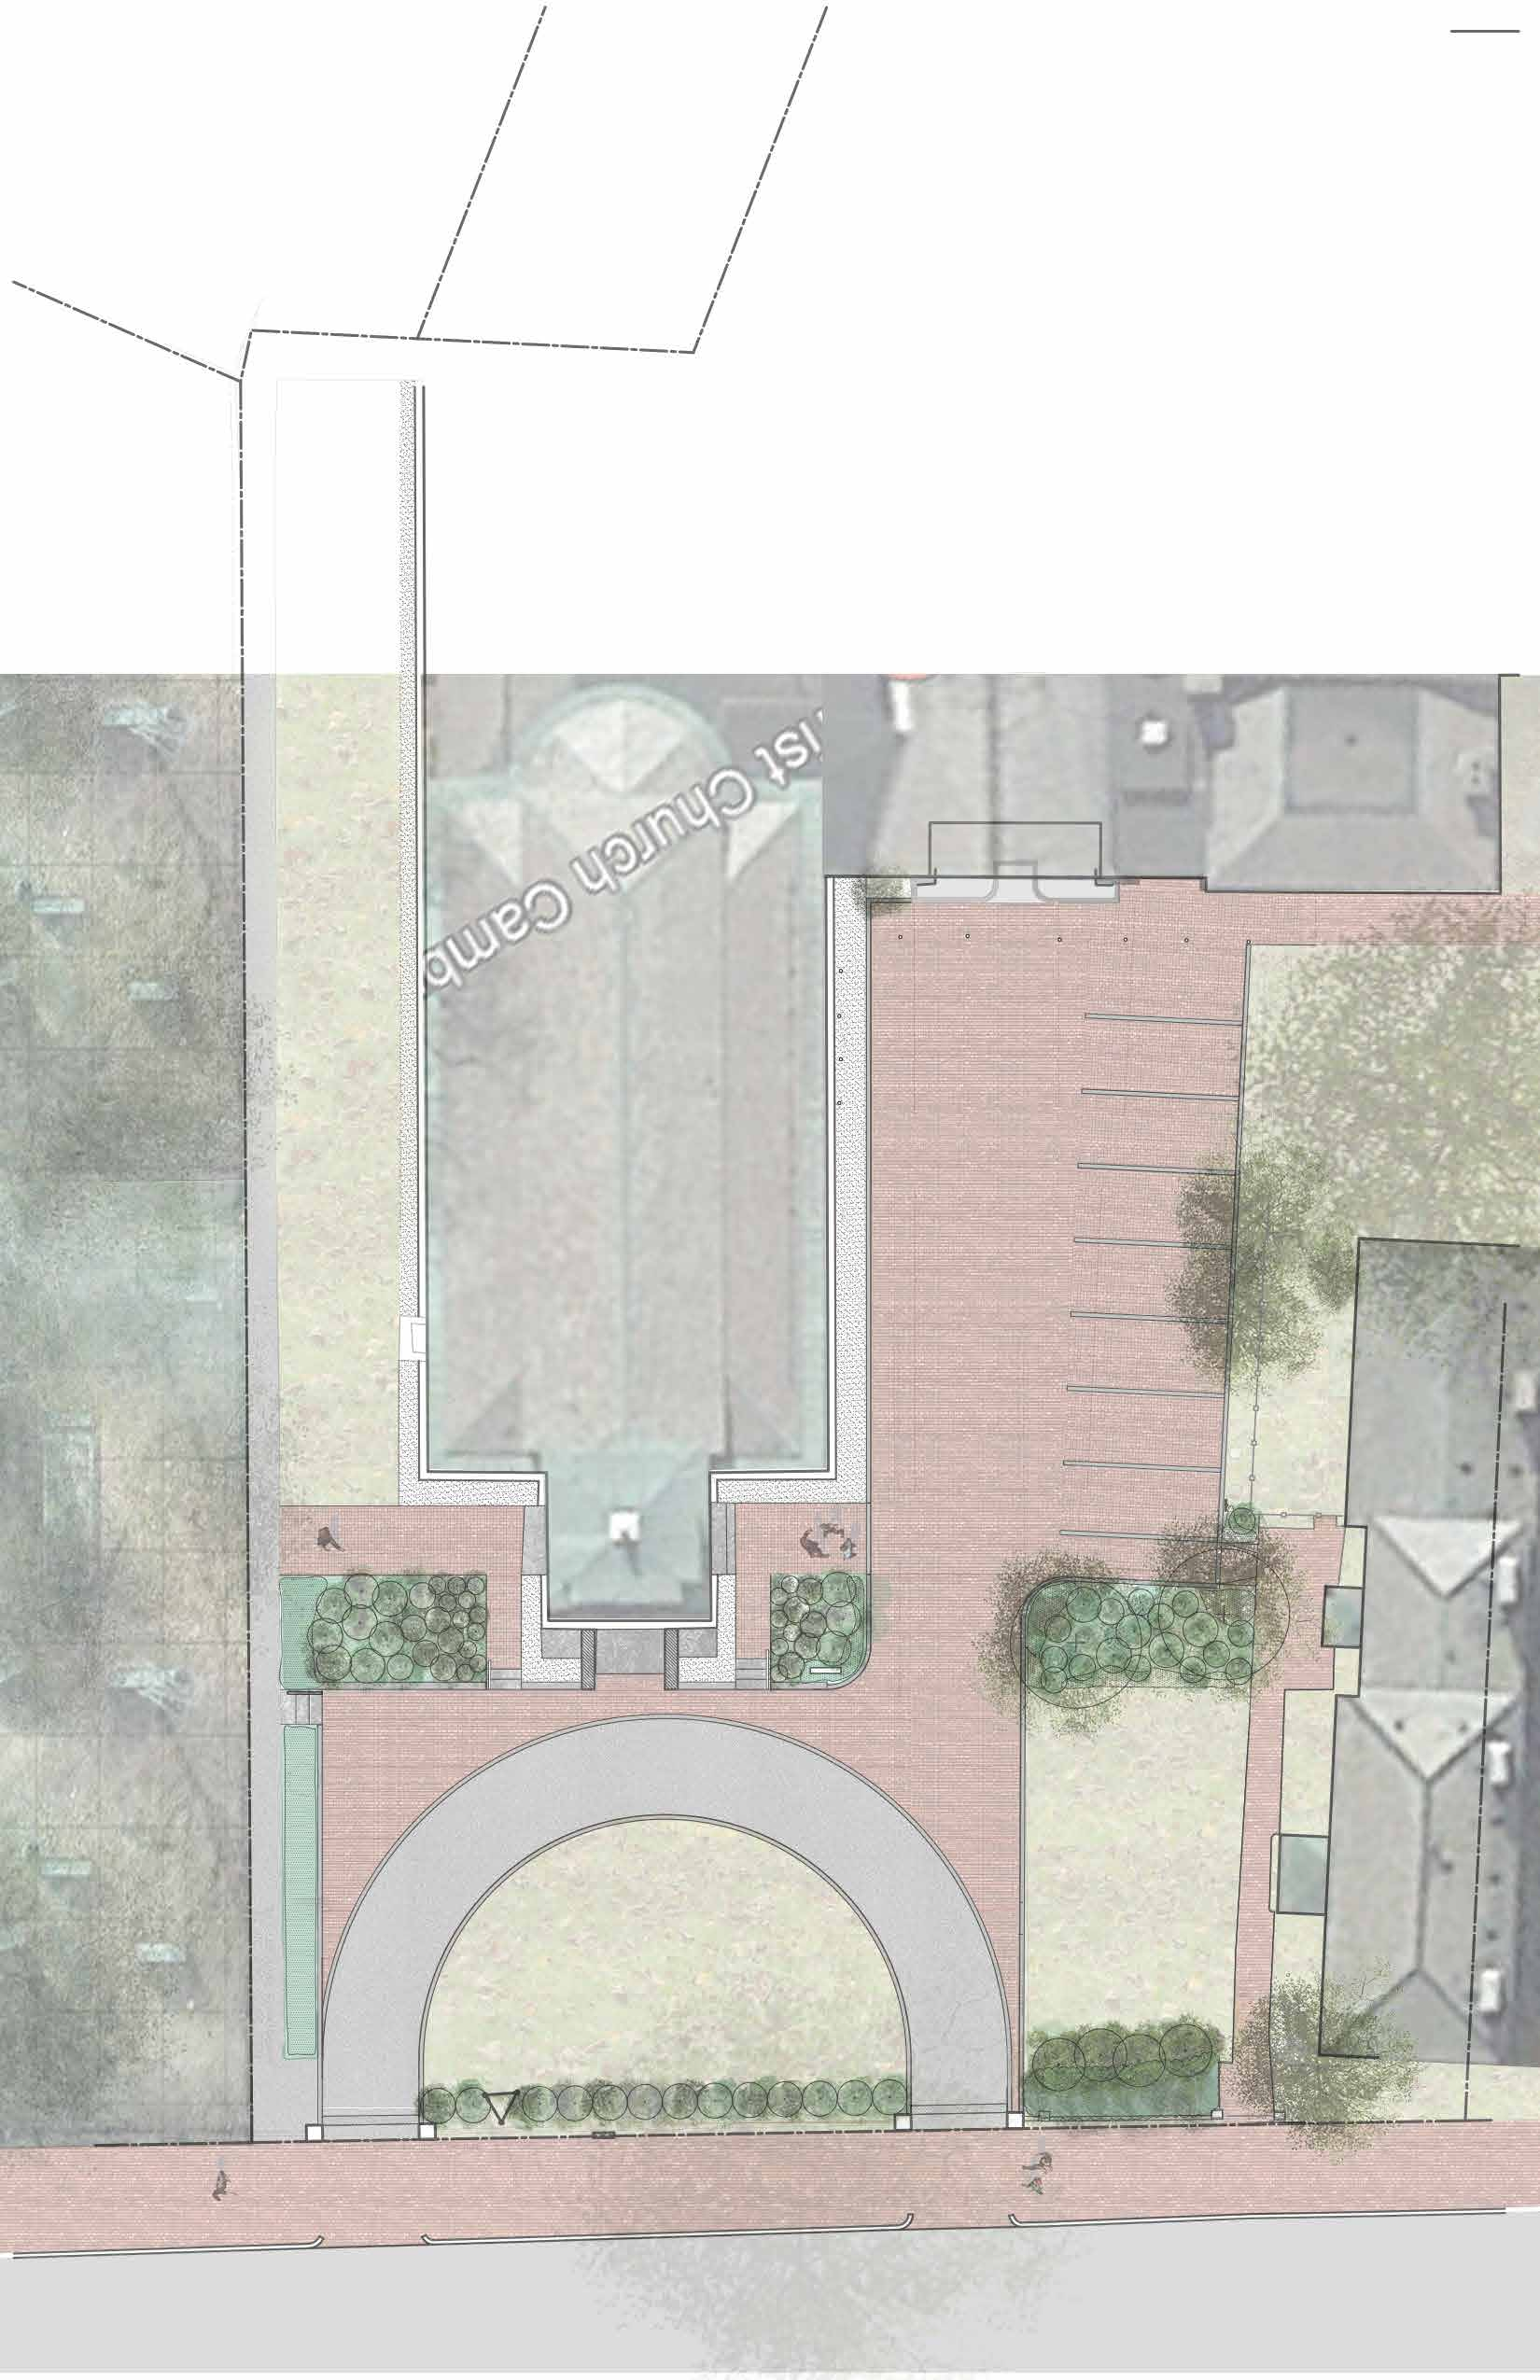 Christ Church_Illustrative Site Plan V8_11x17.jpg